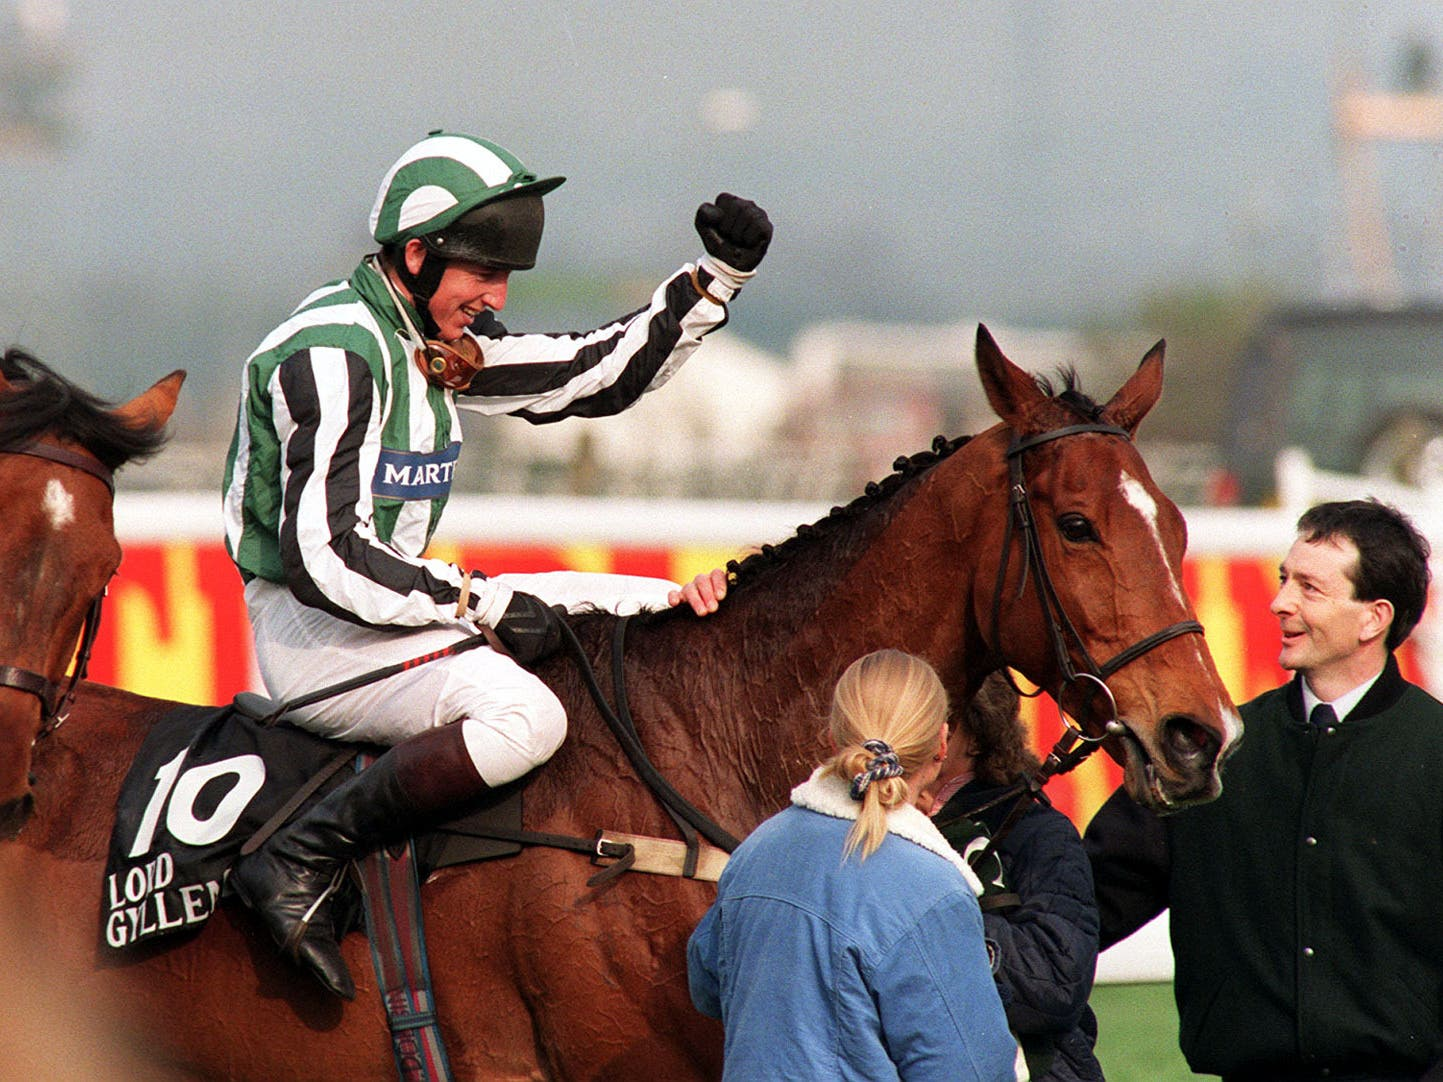 Tony Dobbin and Lord Gyllene celebrate after their victory in the 1997 Grand National (John Giles/PA)